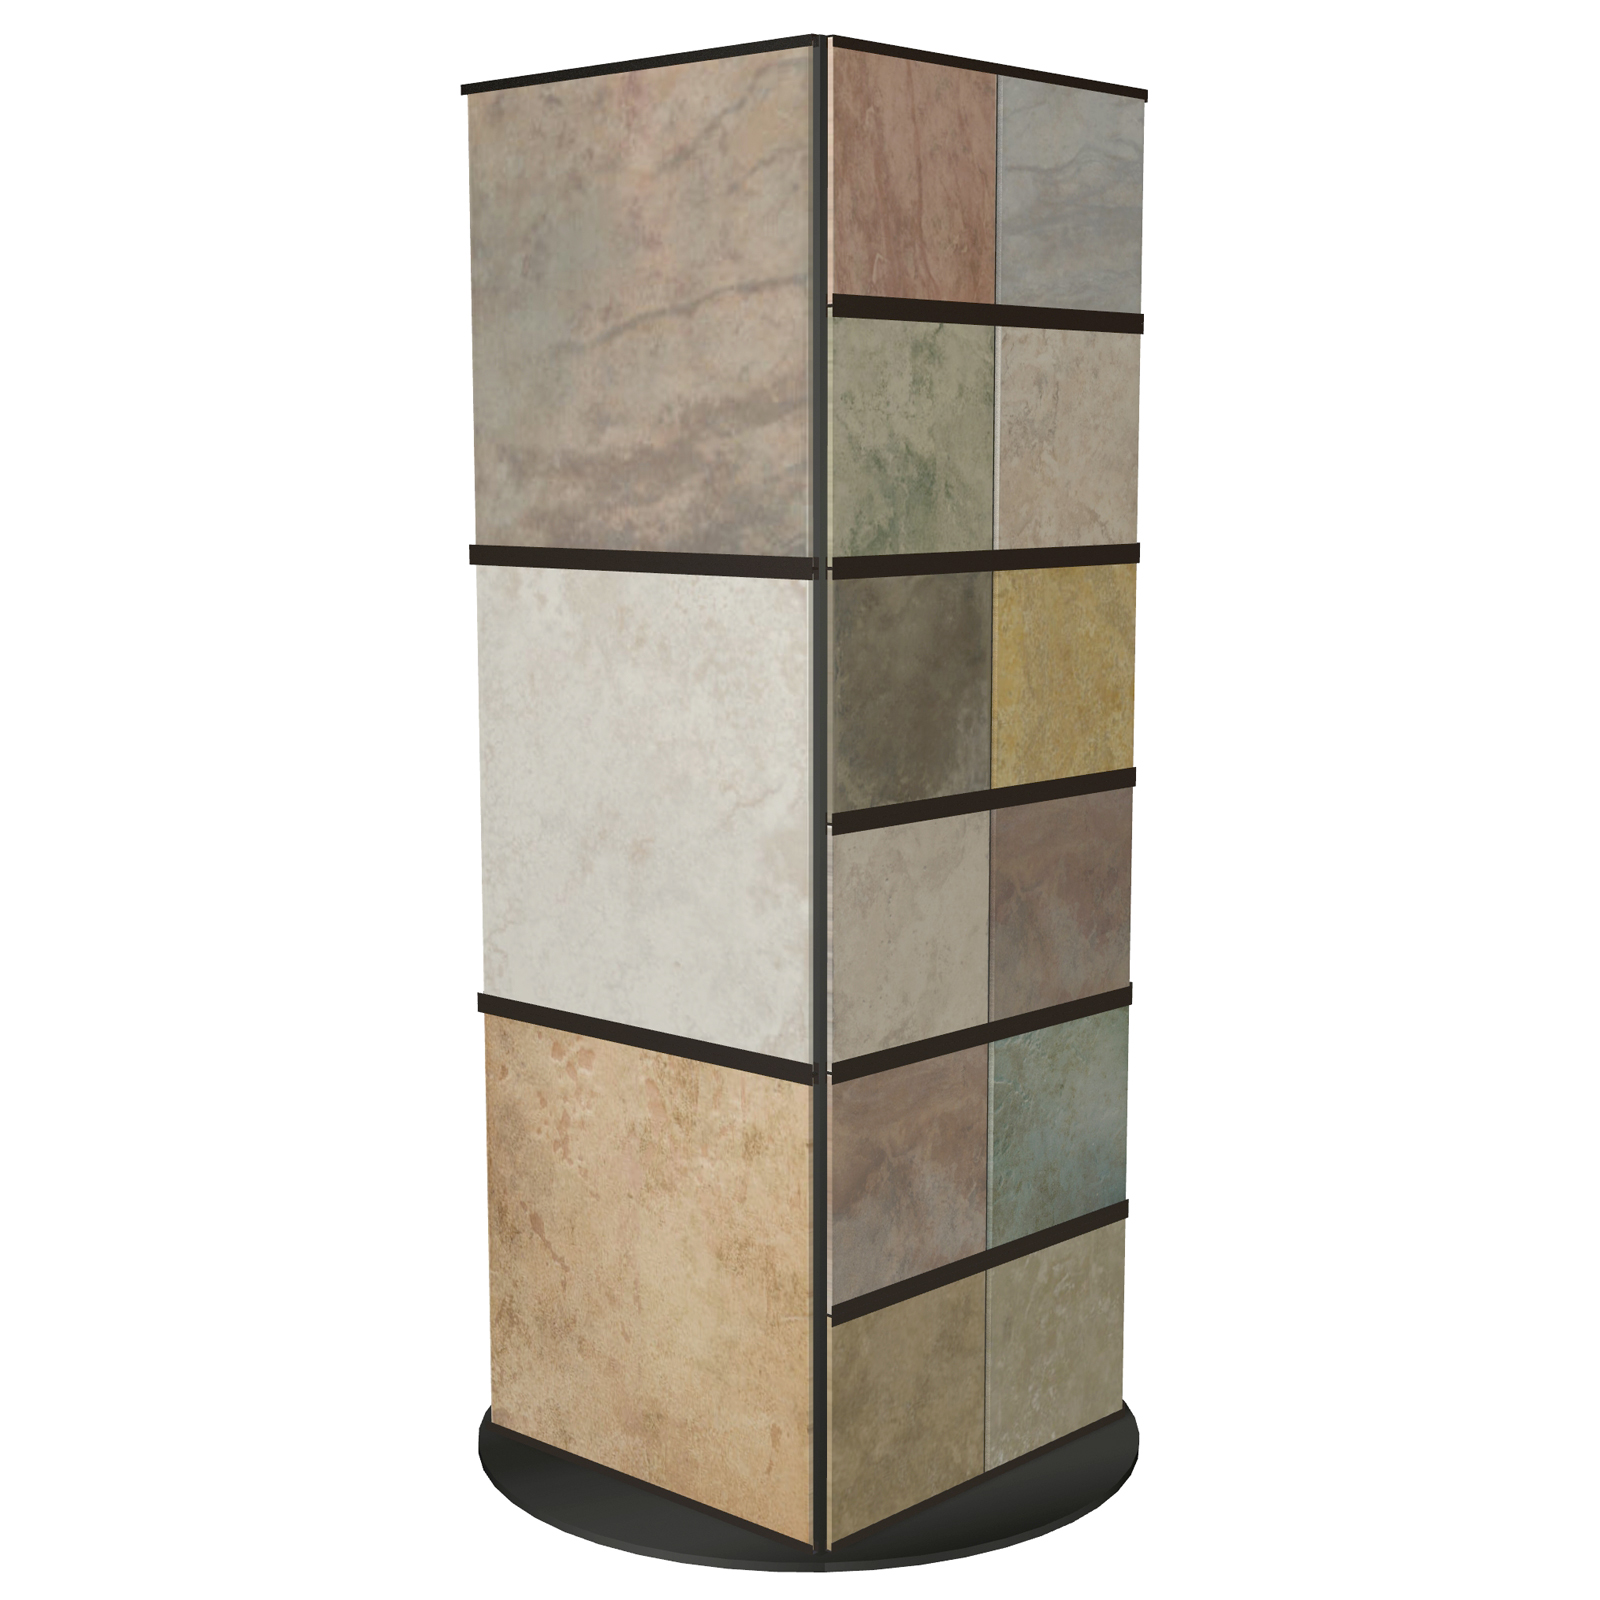 CD10 Tower can be Customized to Display Large Tile Stone Marble or Quartz Samples Rotating Base Makes for Great Viewing